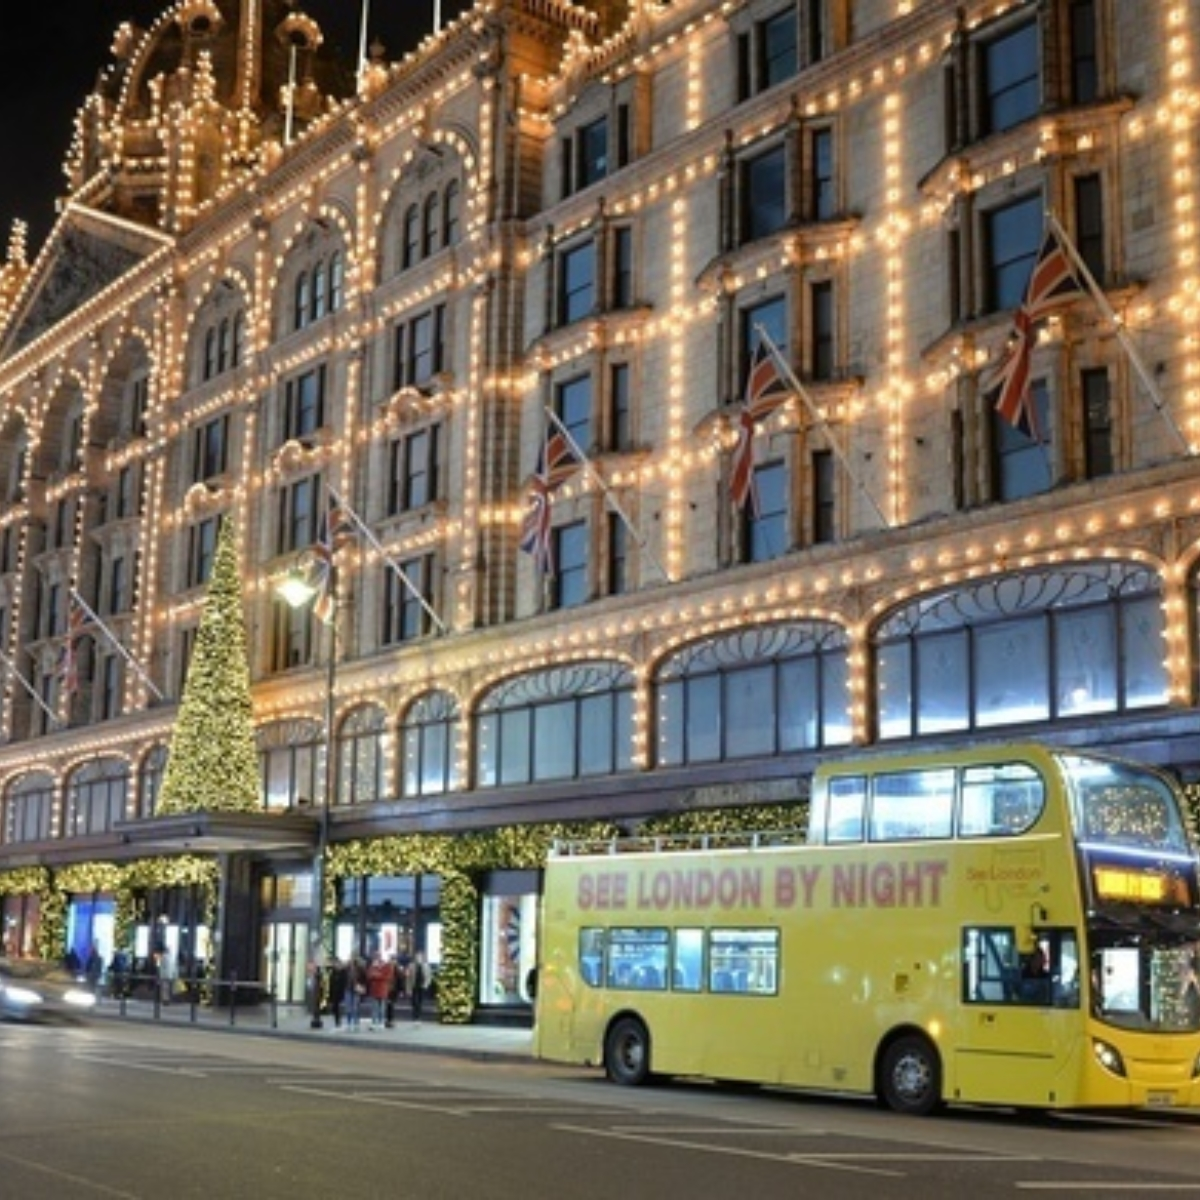 See London by Night   Your London by Night Bus Tour Images